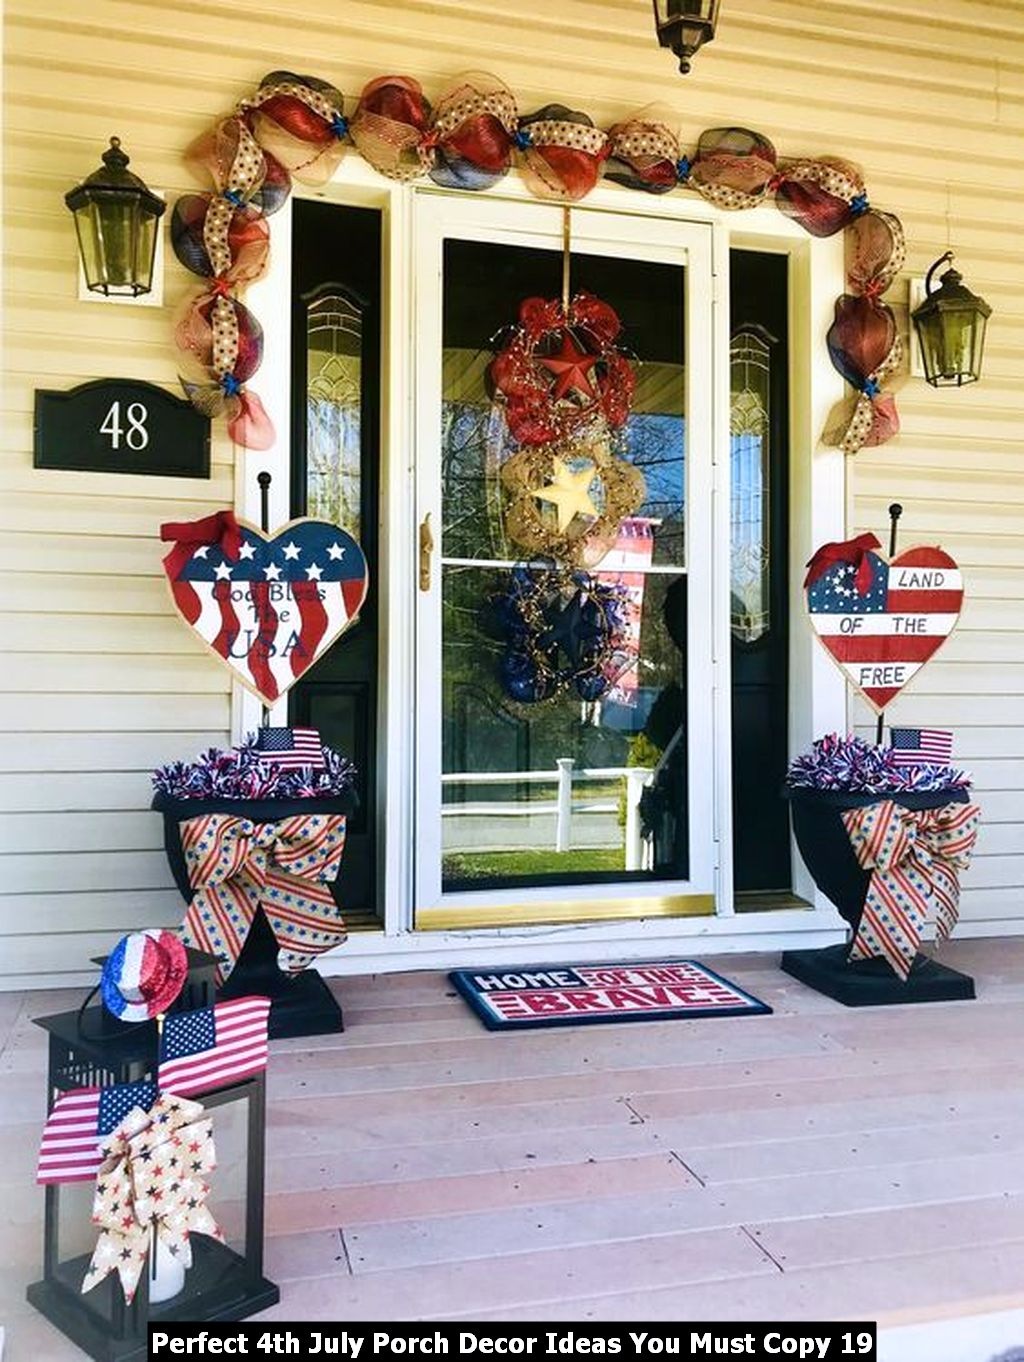 Perfect 4th July Porch Decor Ideas You Must Copy 19